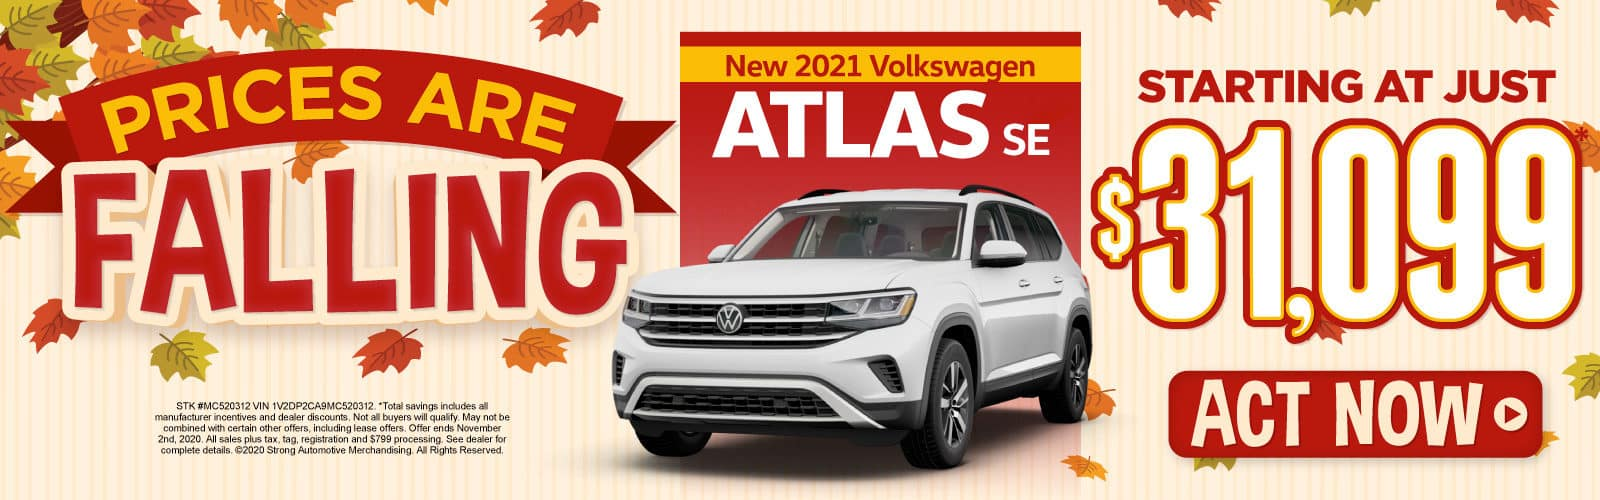 New 2021 Atlas SE - Starting at just $31,099 - Act Now